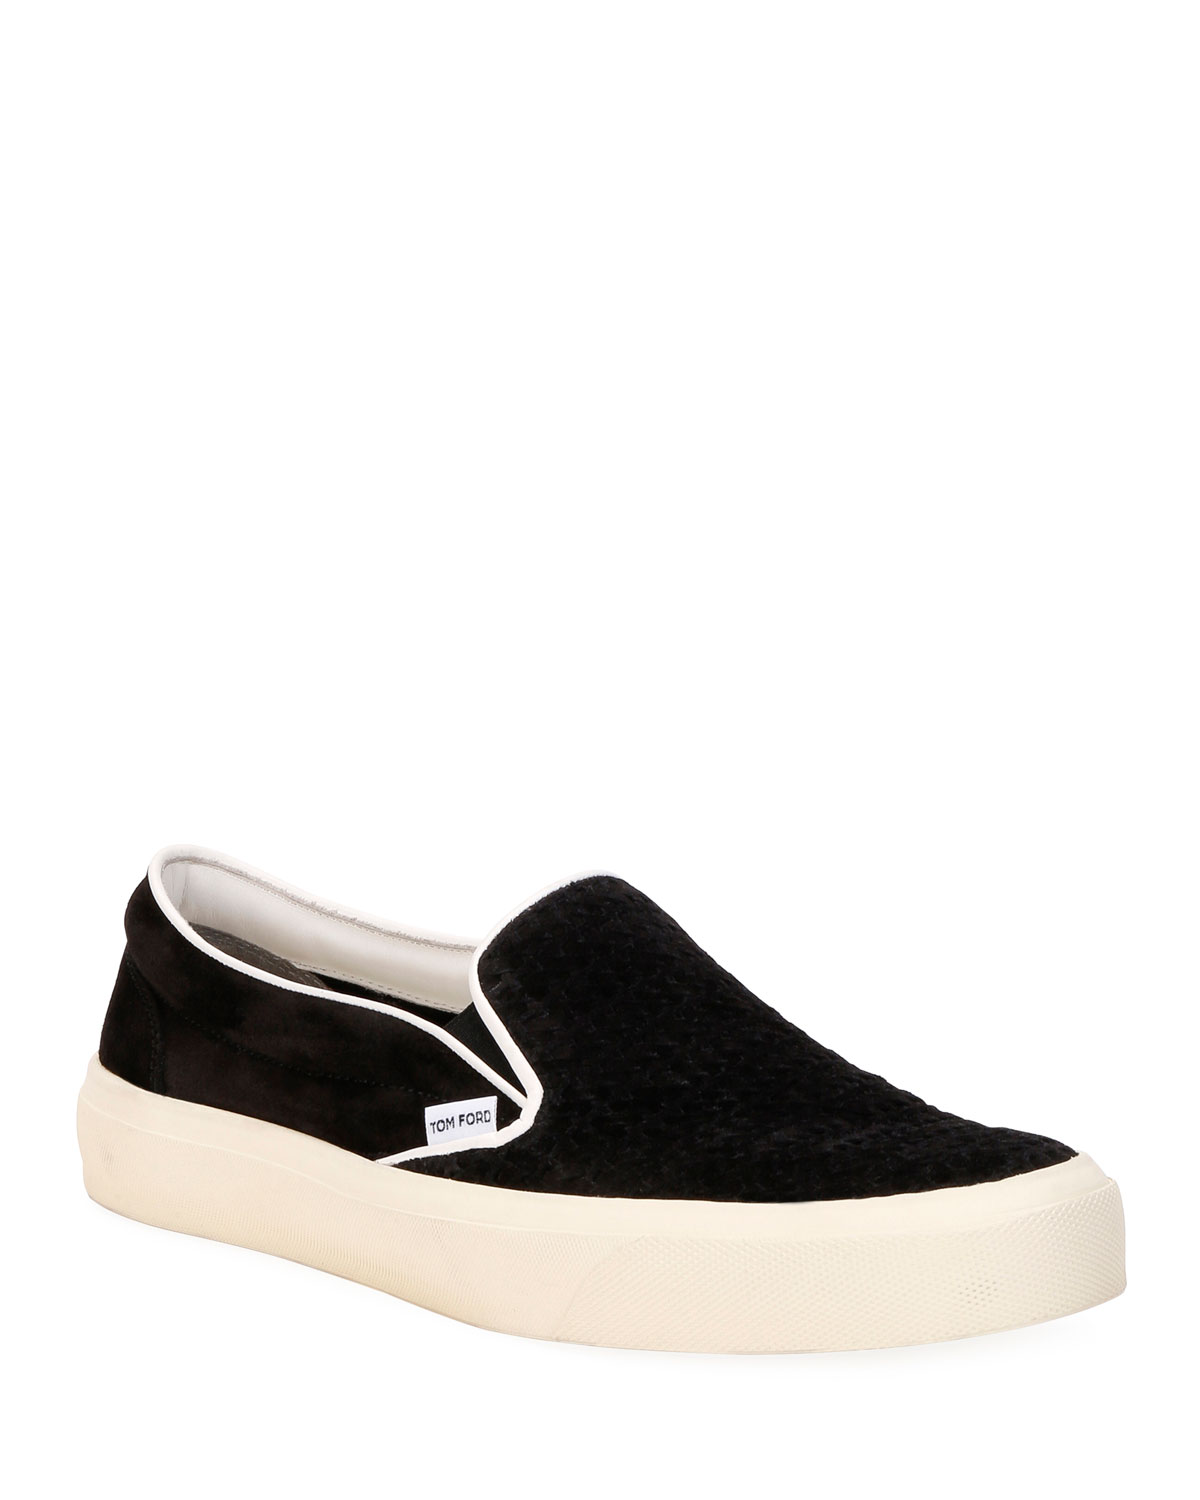 TOM FORD Men's Platform Woven Suede Slip-On Sneakers